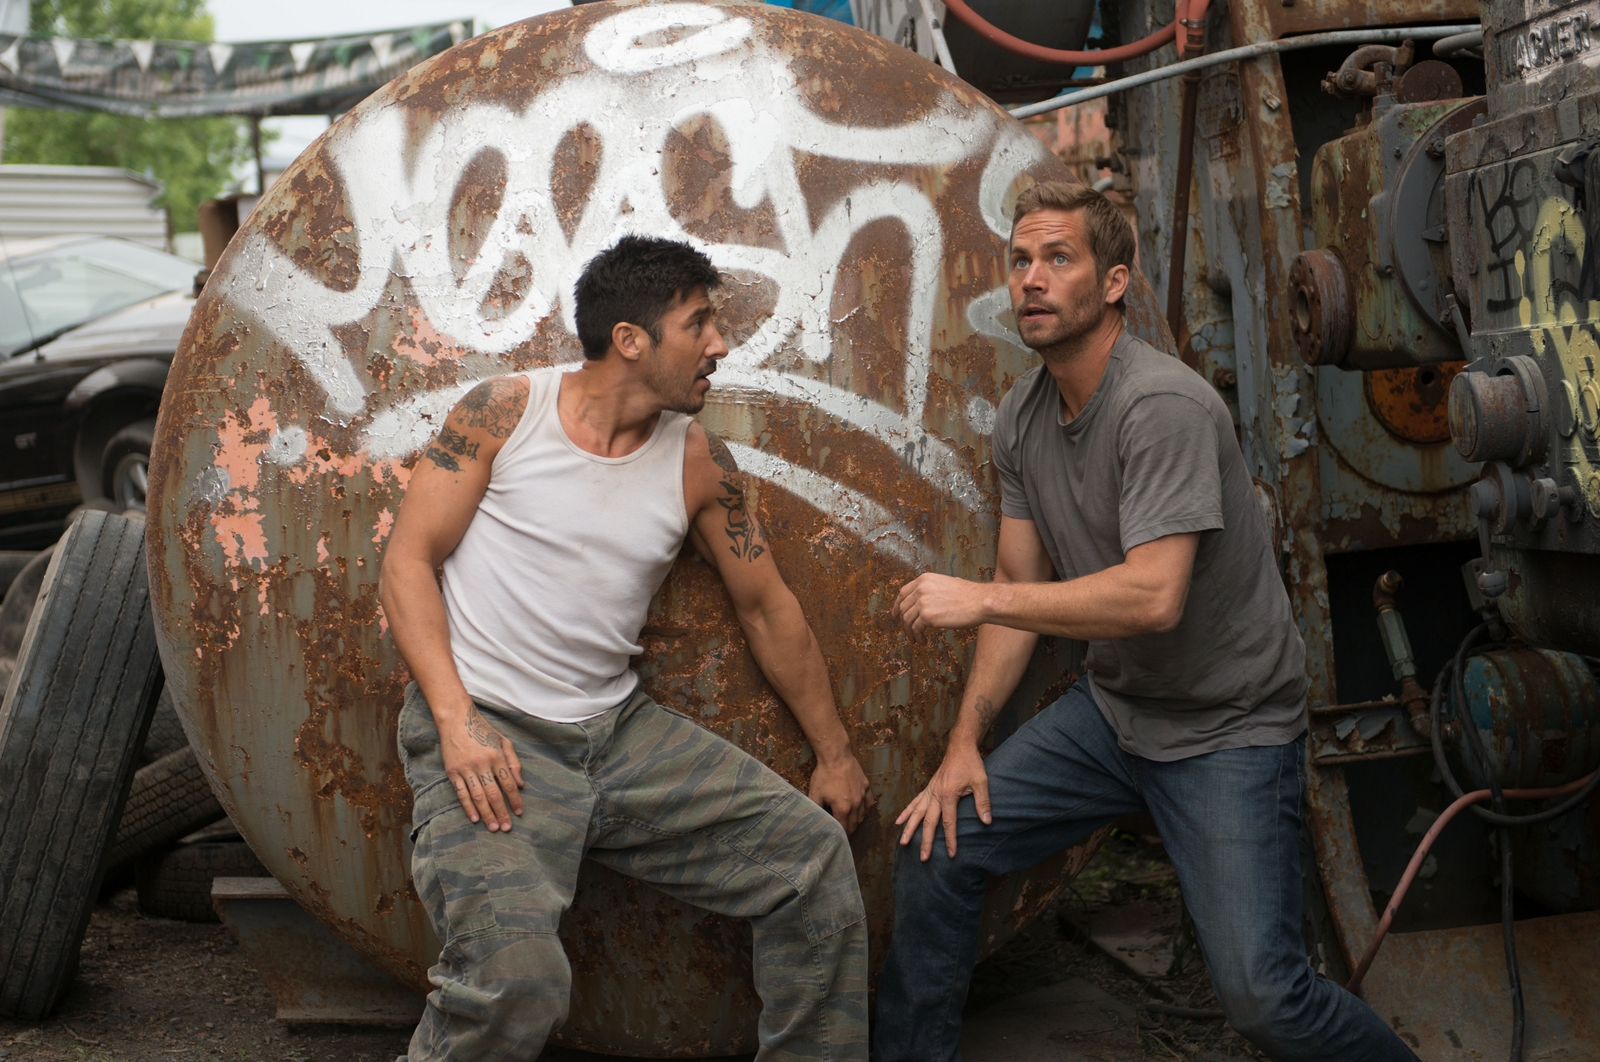 Brick-Mansions-Paul-Walker-Image-6